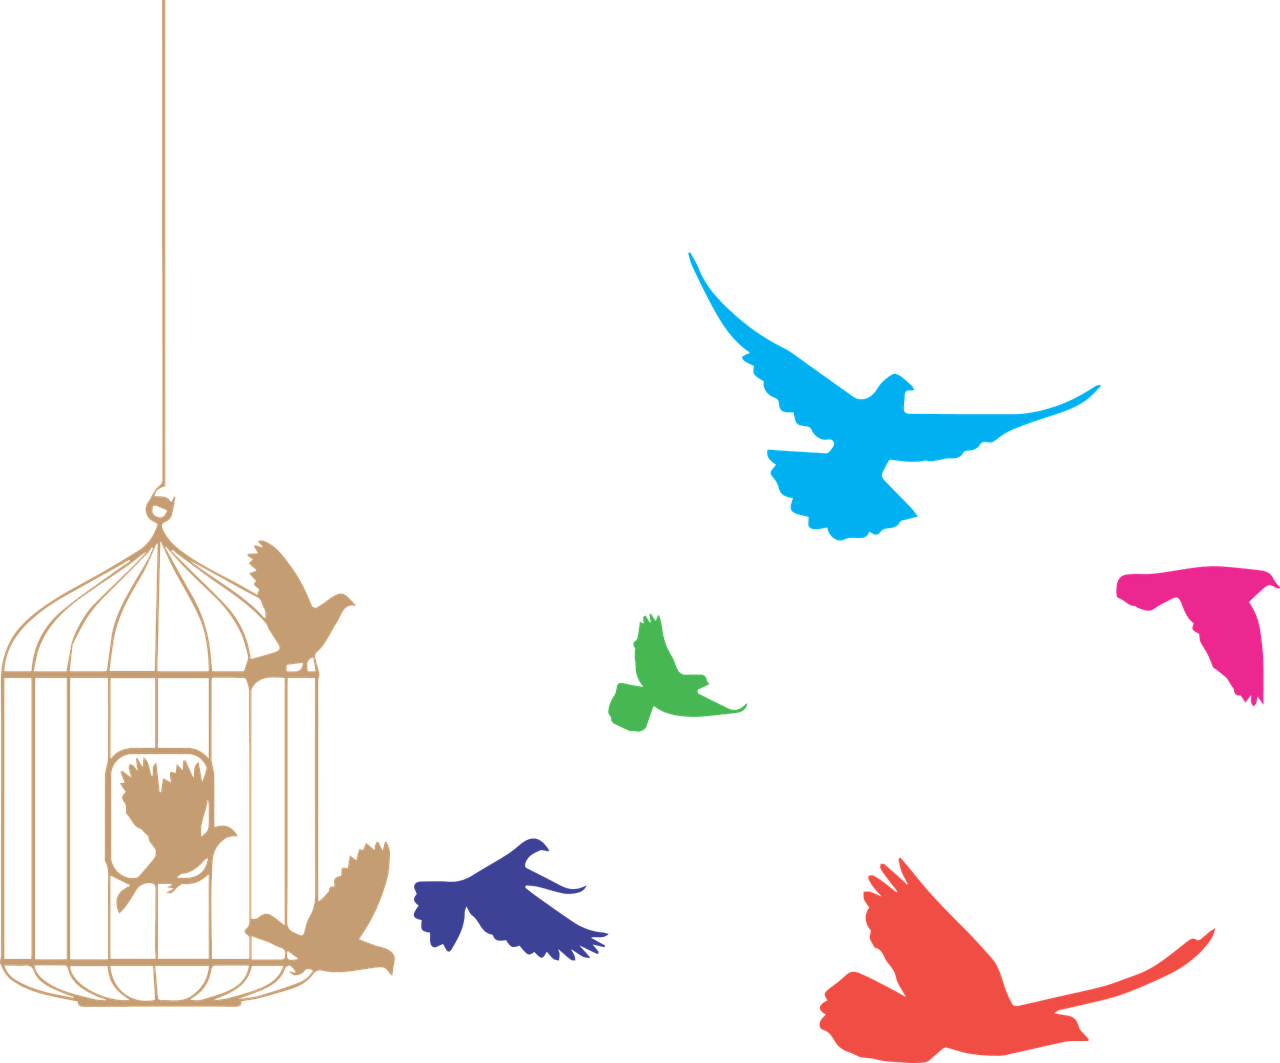 birds flying from cage clipart transparent png stickpng rh stickpng com flying birds clipart images birds flying clipart